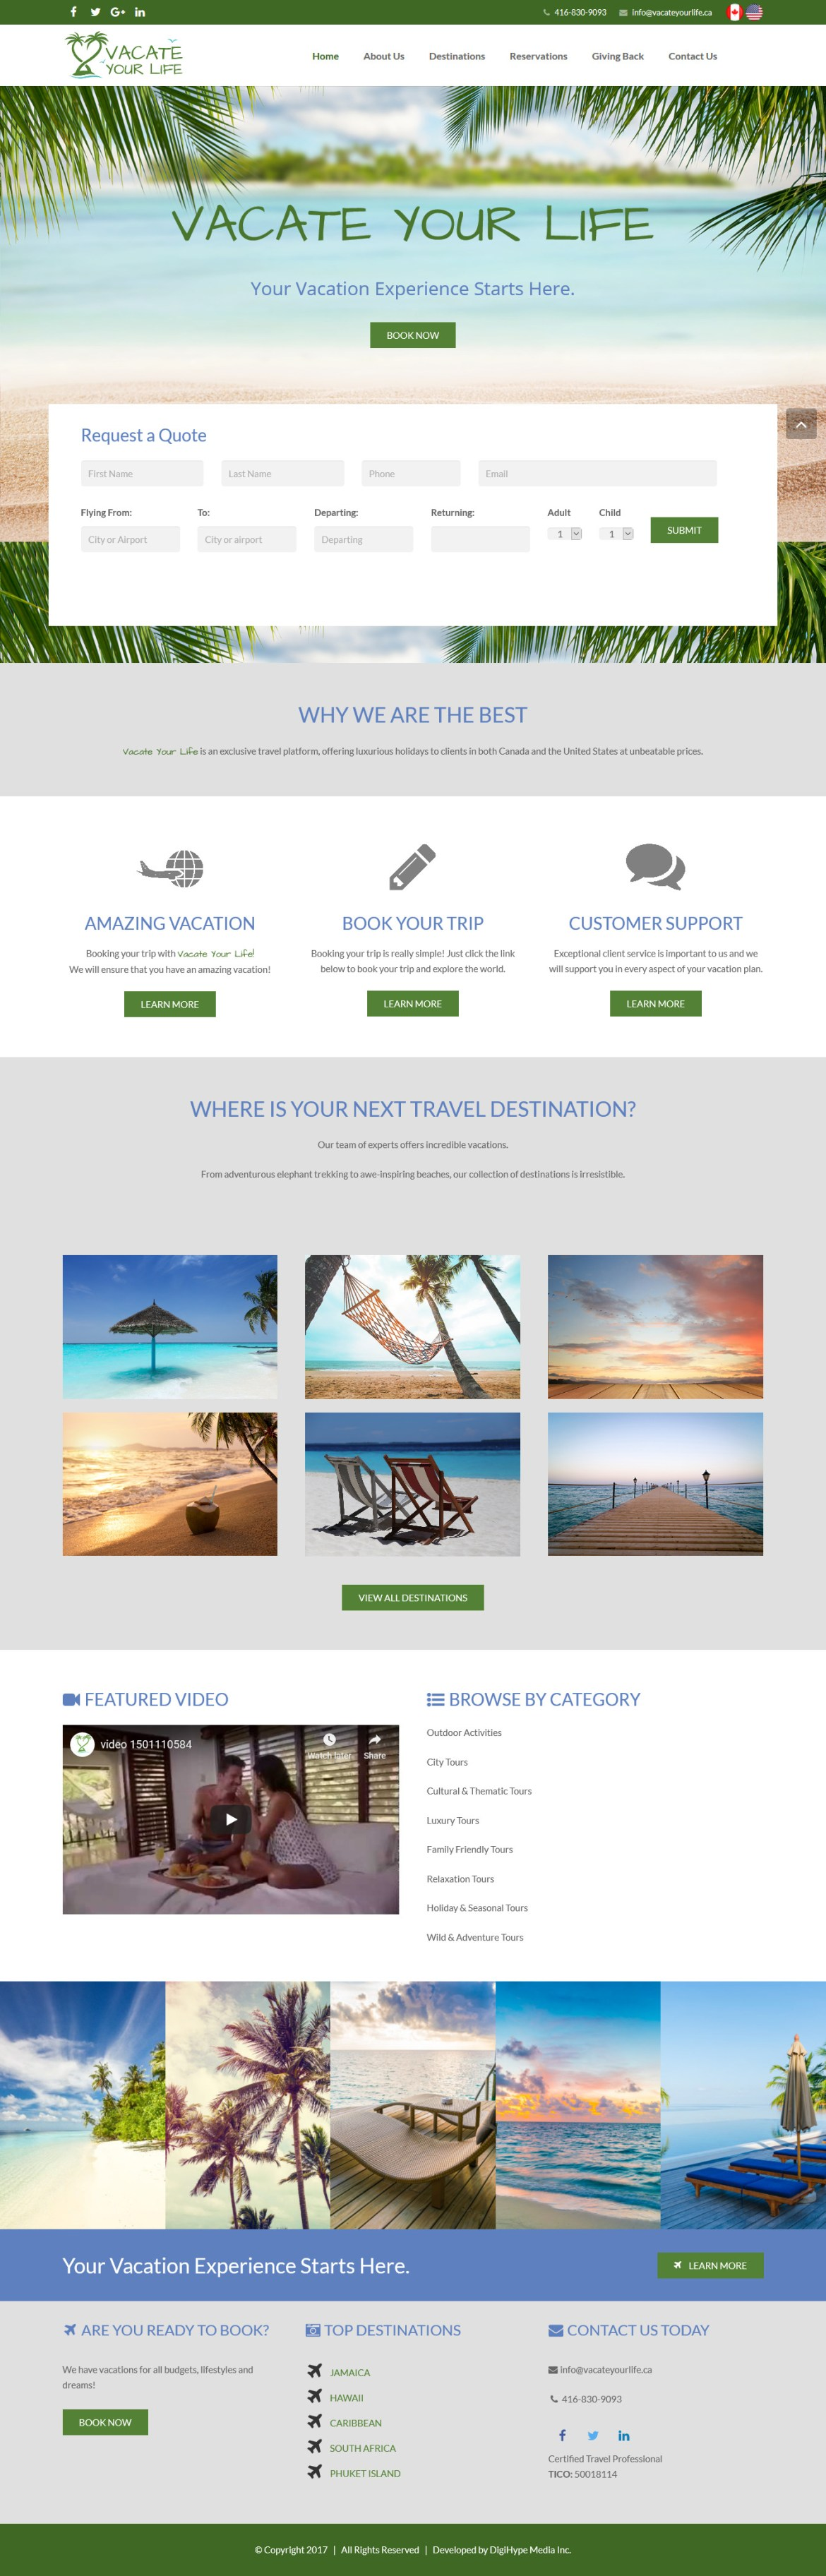 Local Toronto Travel Agency (website UX design)